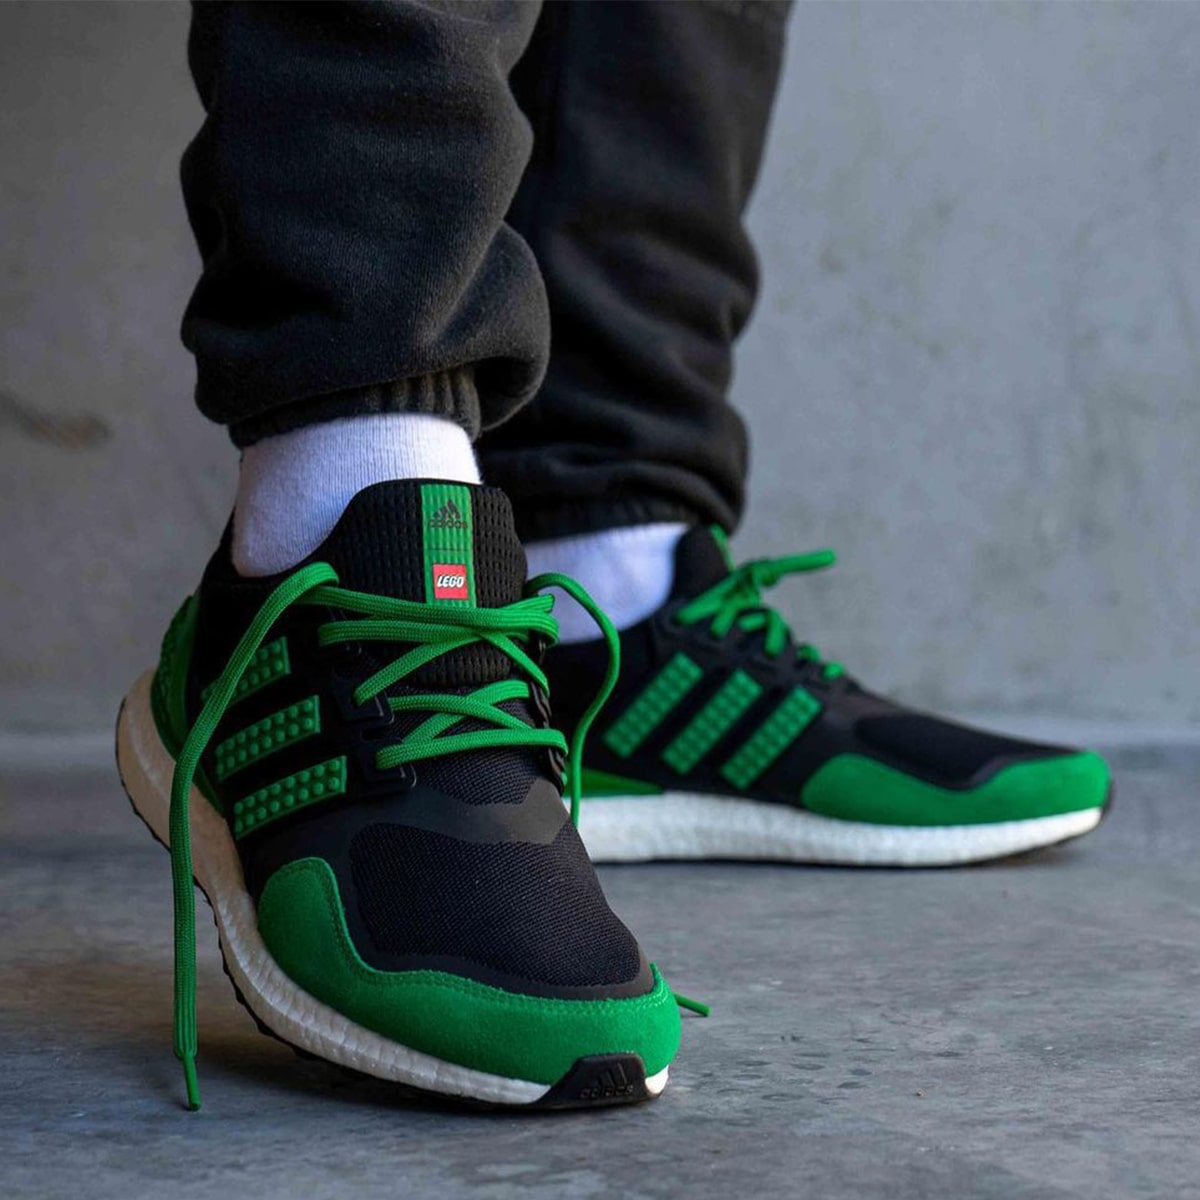 Another LEGO x adidas Ultra BOOST Appears in Black and Green